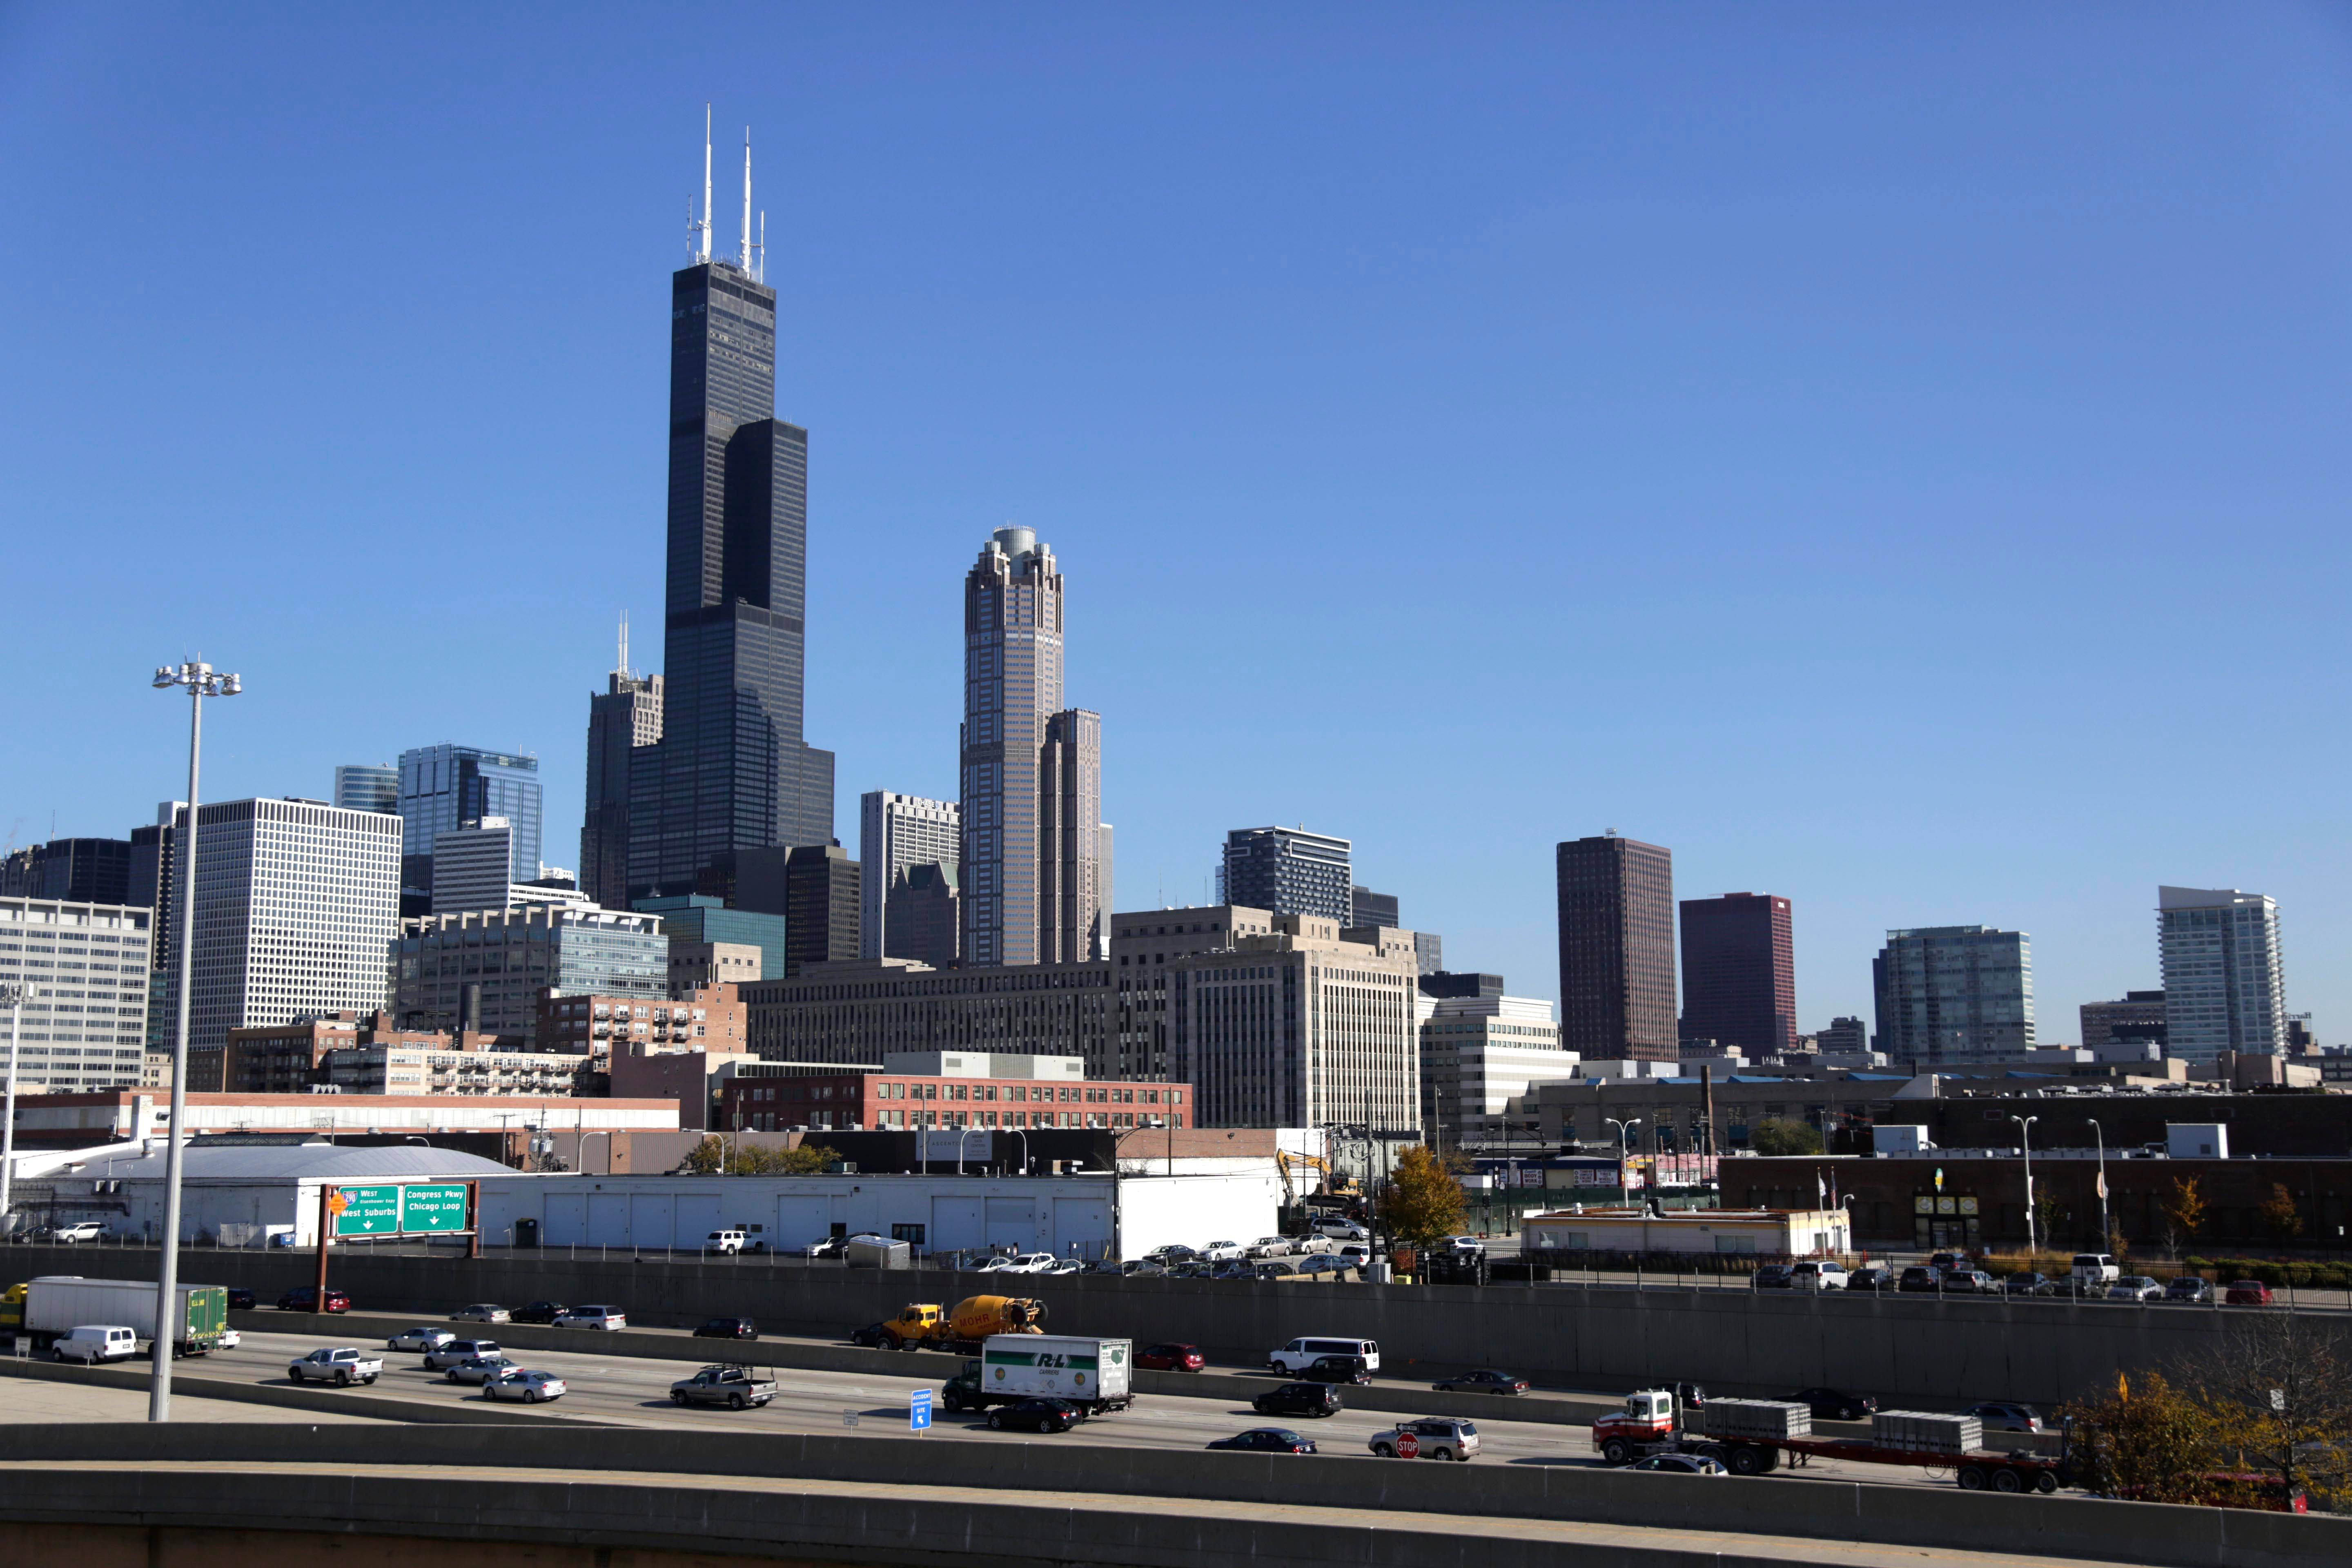 Chicago's iconic Willis Tower up for sale